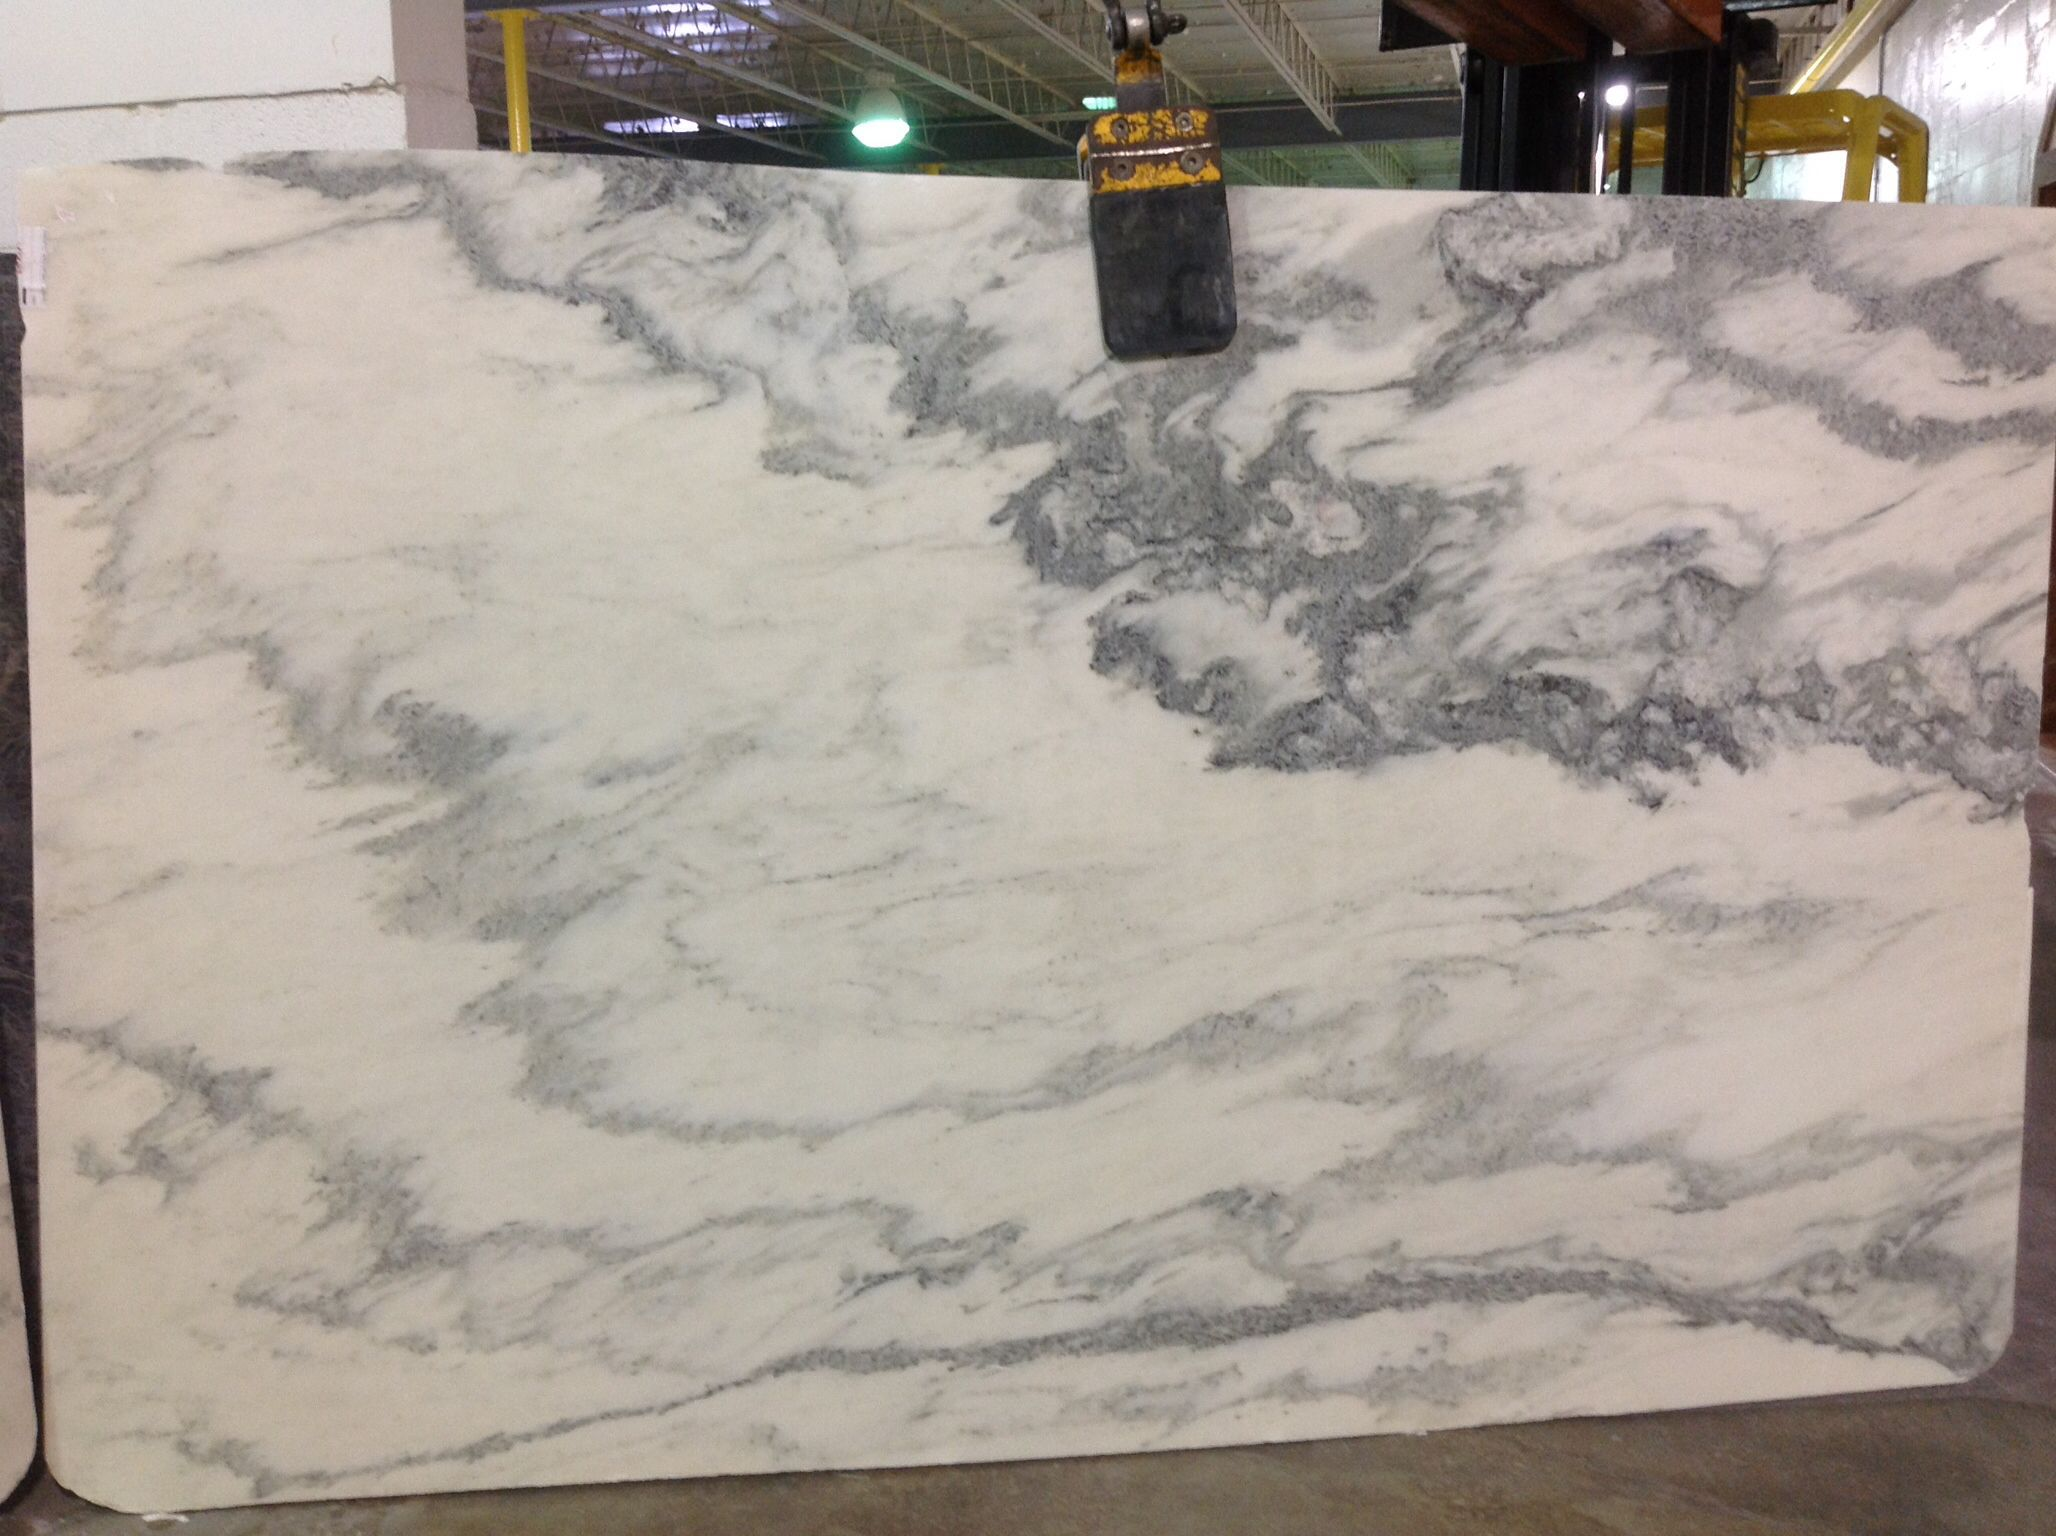 Vermont Danby Montclair Marble Slabs For Kitchen Countertops Marble Slab Kitchen Countertops Outdoor